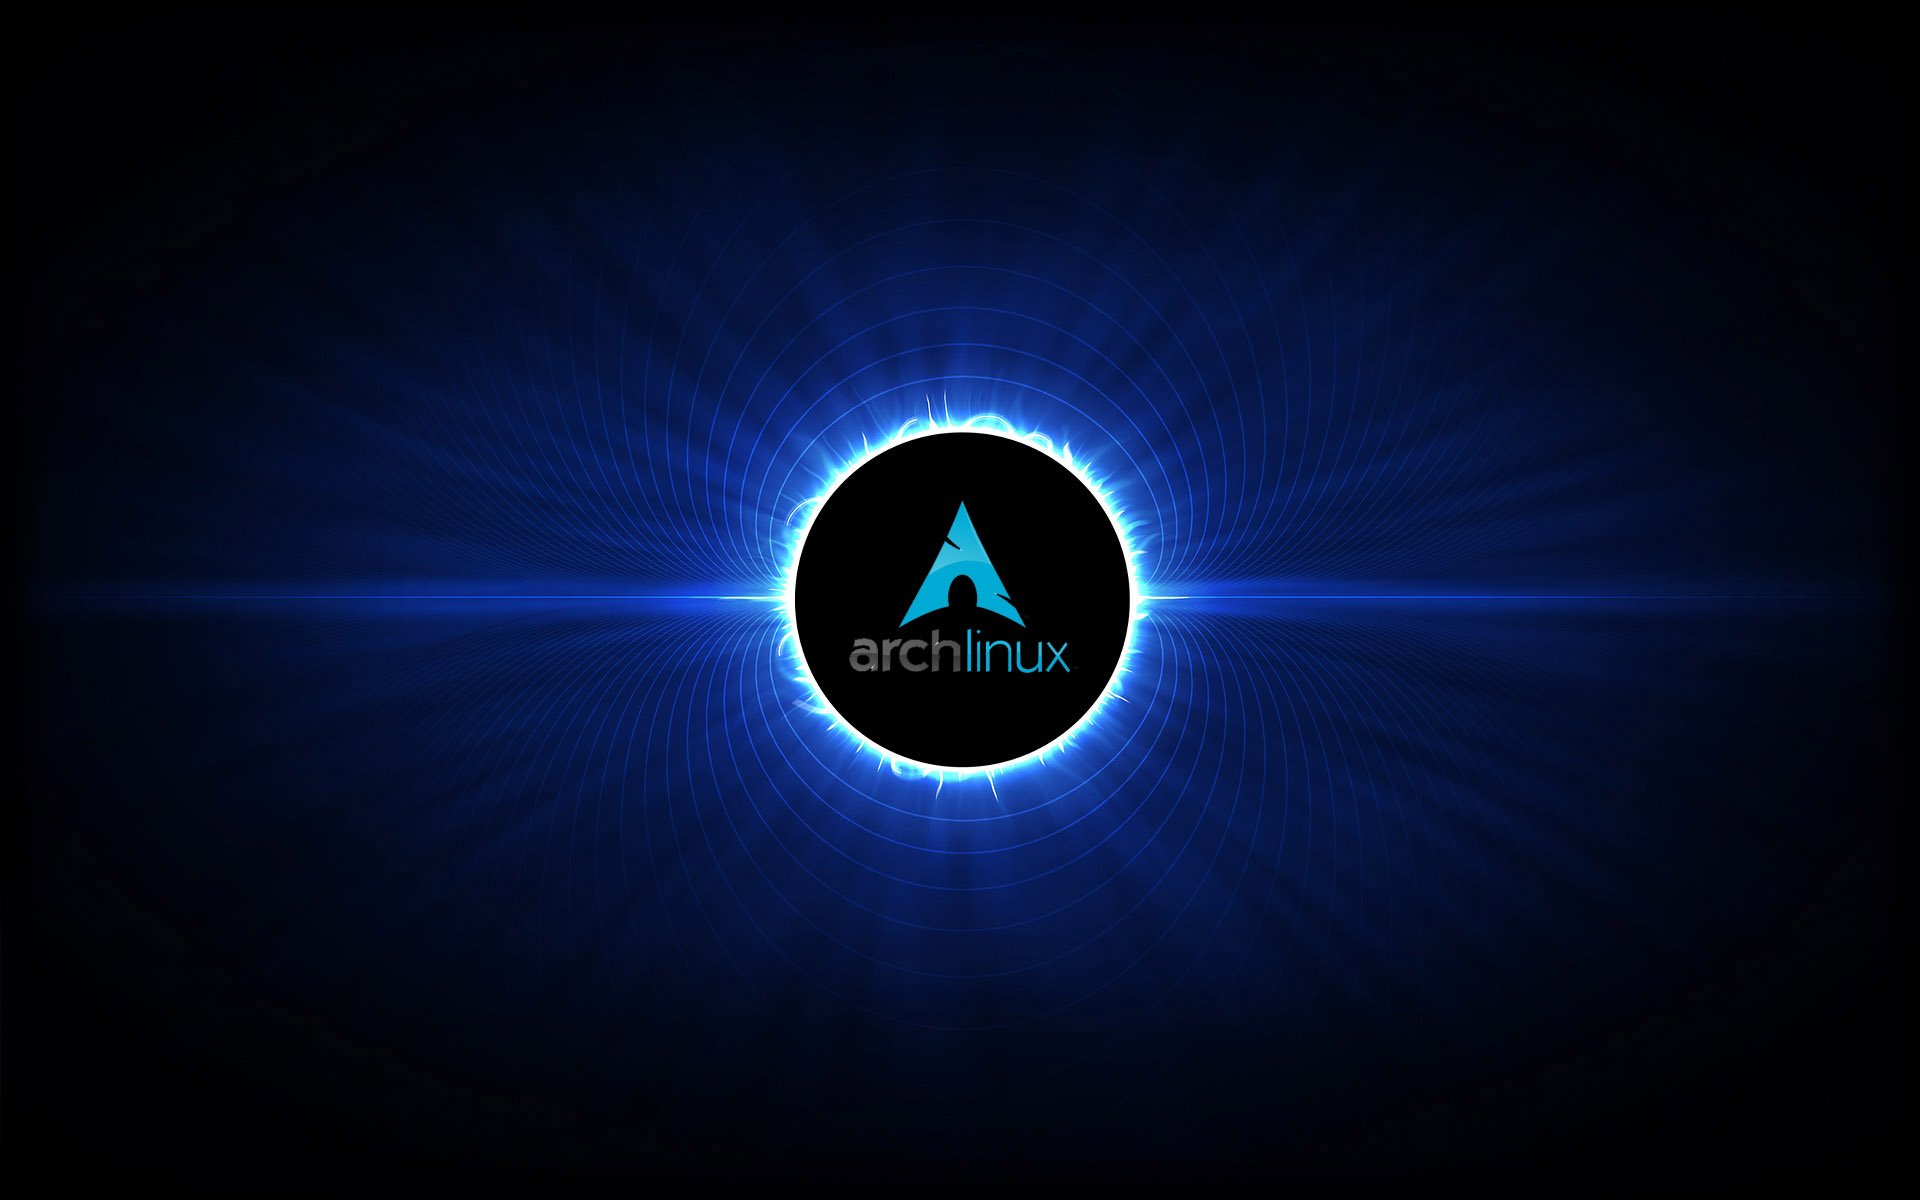 alienware wallpaper image wallpapers universe linux 1920x1200 1920x1200